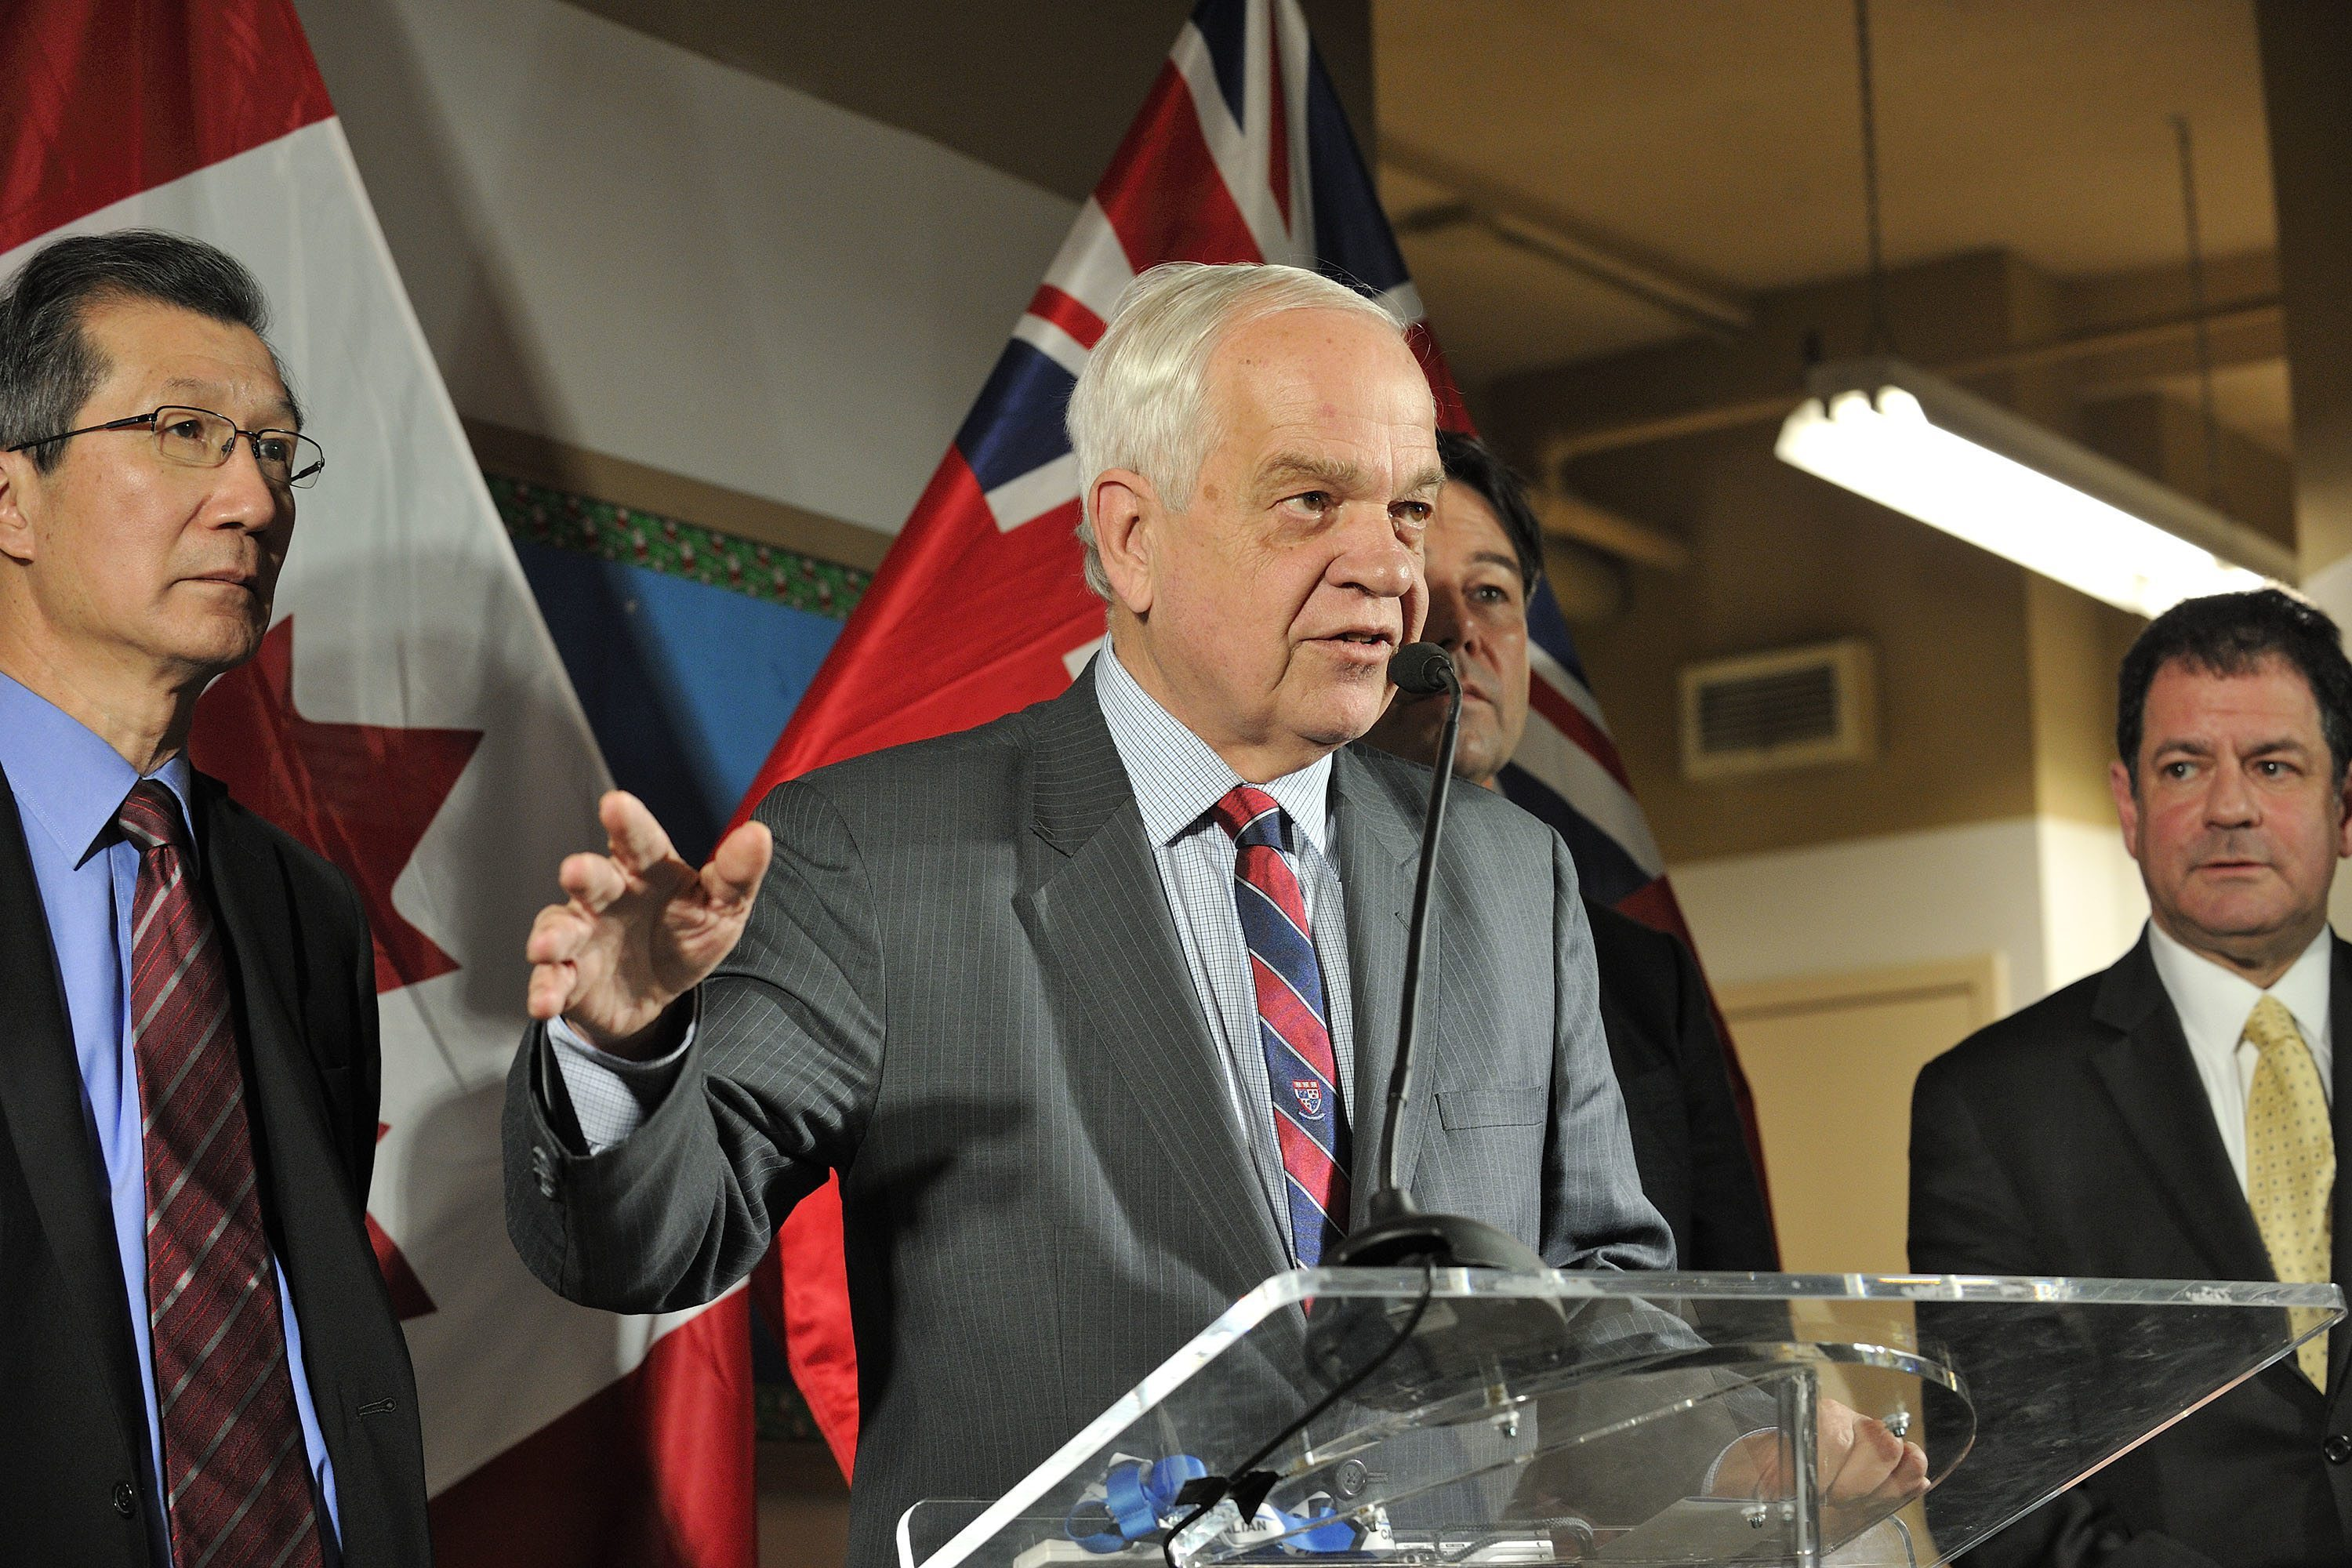 Minister McCallum along with Minister Michael Chan, Minister Eric Hoskins, and Councillor James Pasternak, attends a roundtable discussion and press conference about Canada's plan in brining 25,000 Syrian refugees at COSTI Immigrant Services in Toronto, Ontario on December 3, 2015. Dominic Chan/QMI Agency for IRCC